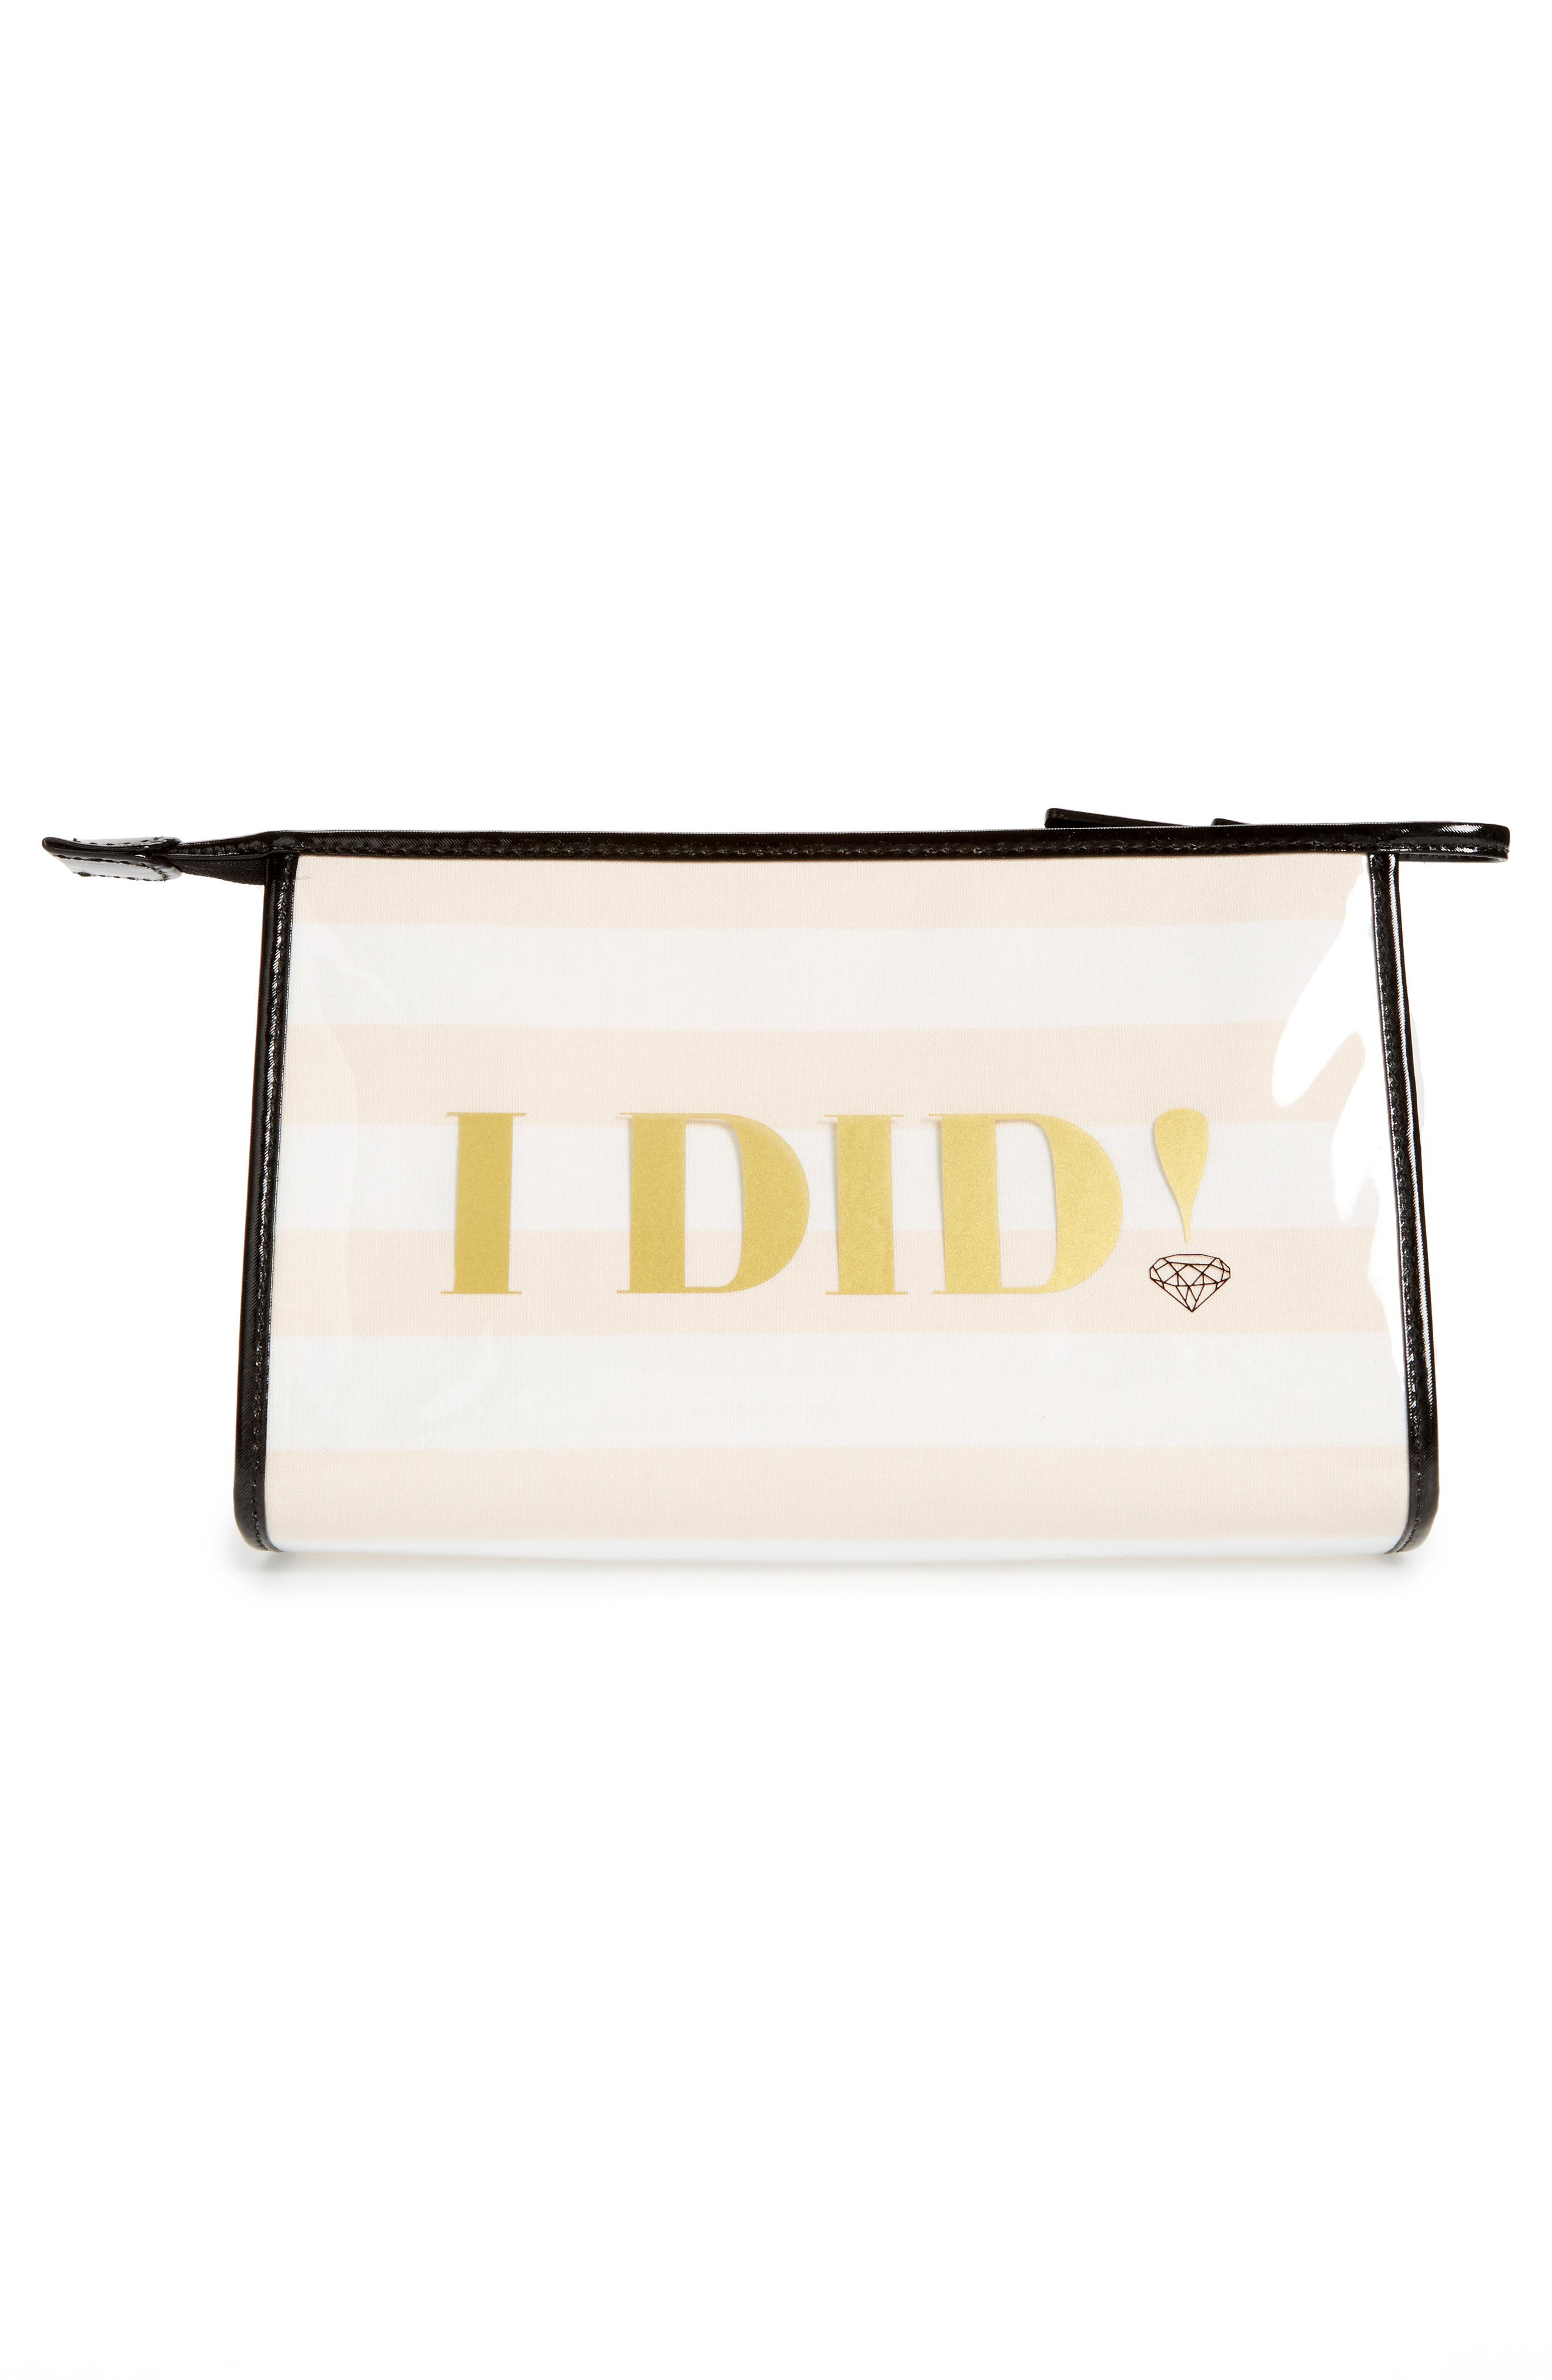 wedding belles - i do/i did pouch,                             Alternate thumbnail 2, color,                             Multi